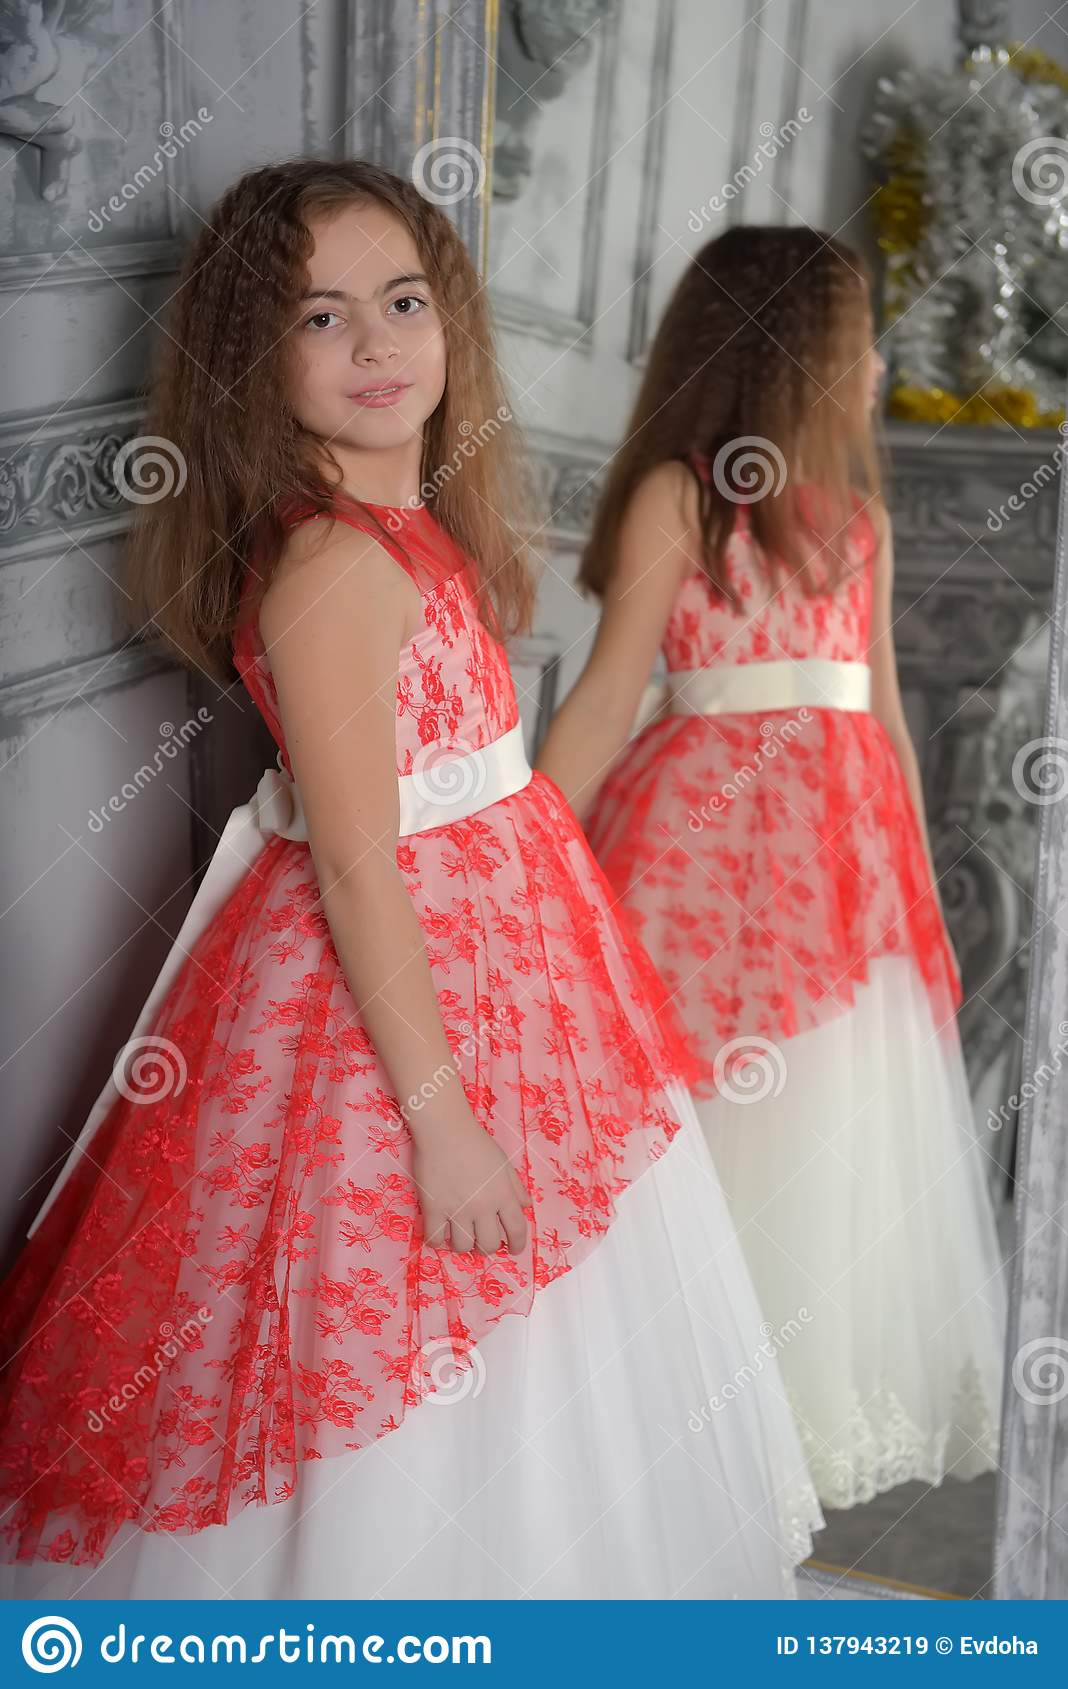 East type the girl the brunette in white with a red elegant dress